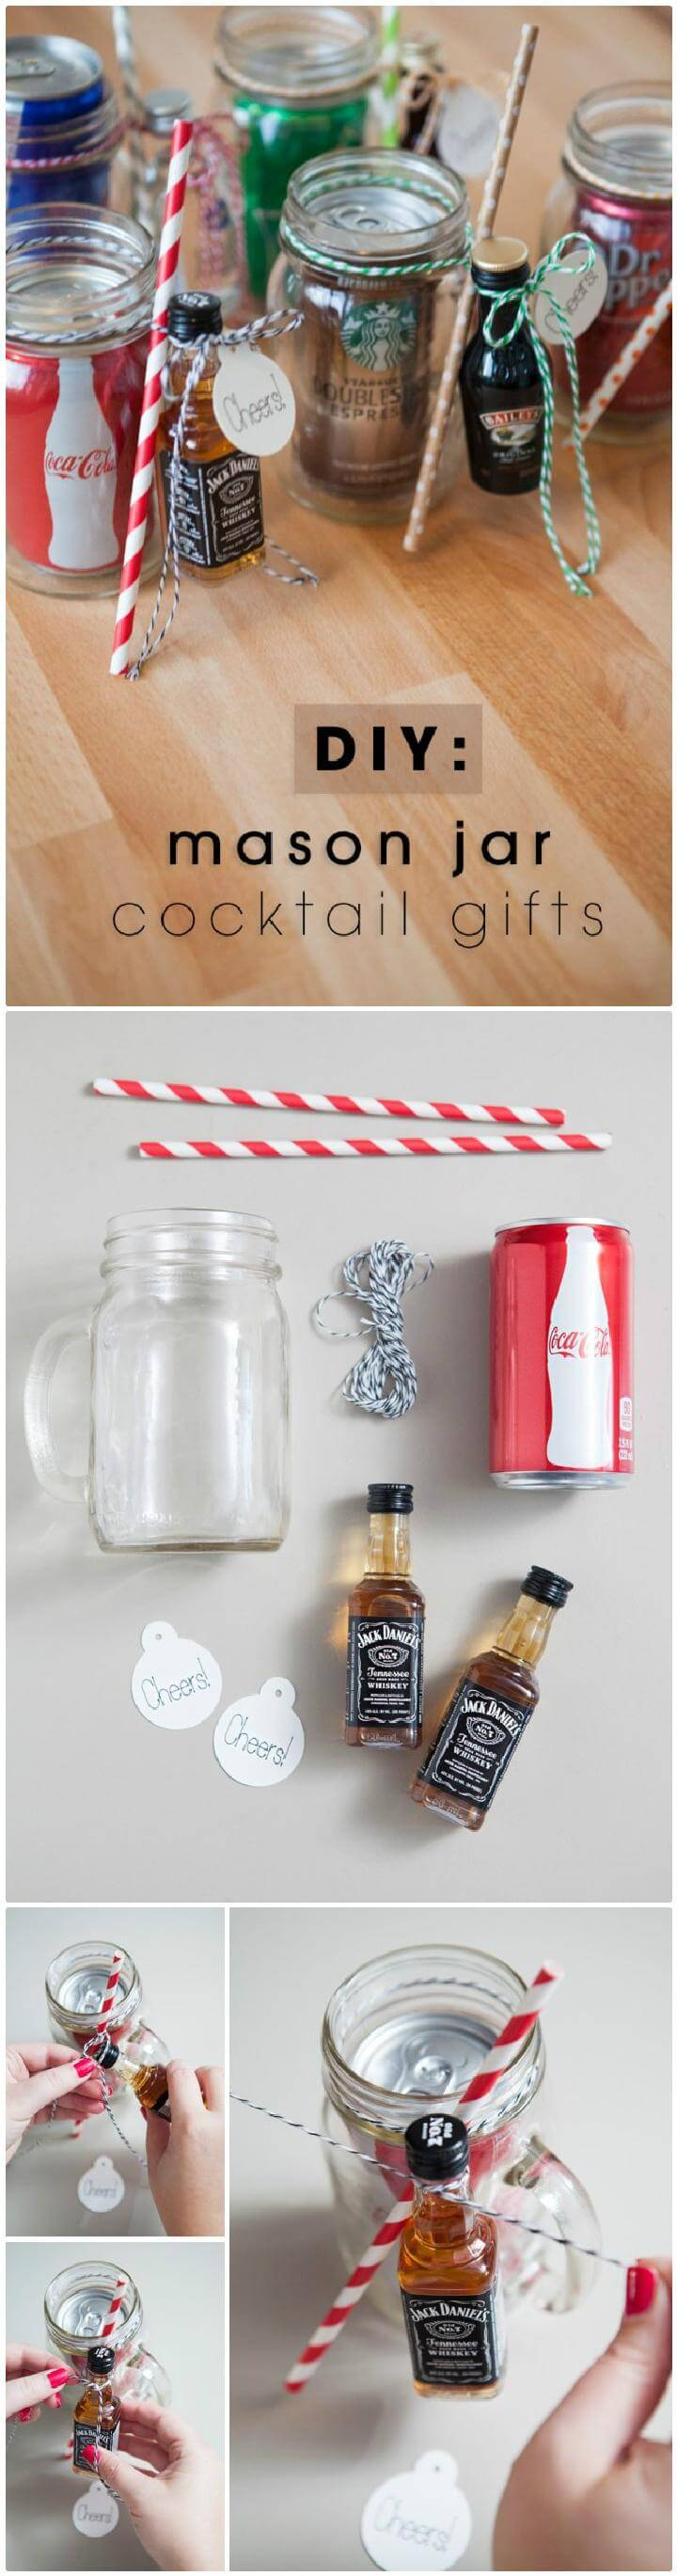 DIY Easy Mason Jar Cocktail Gifts